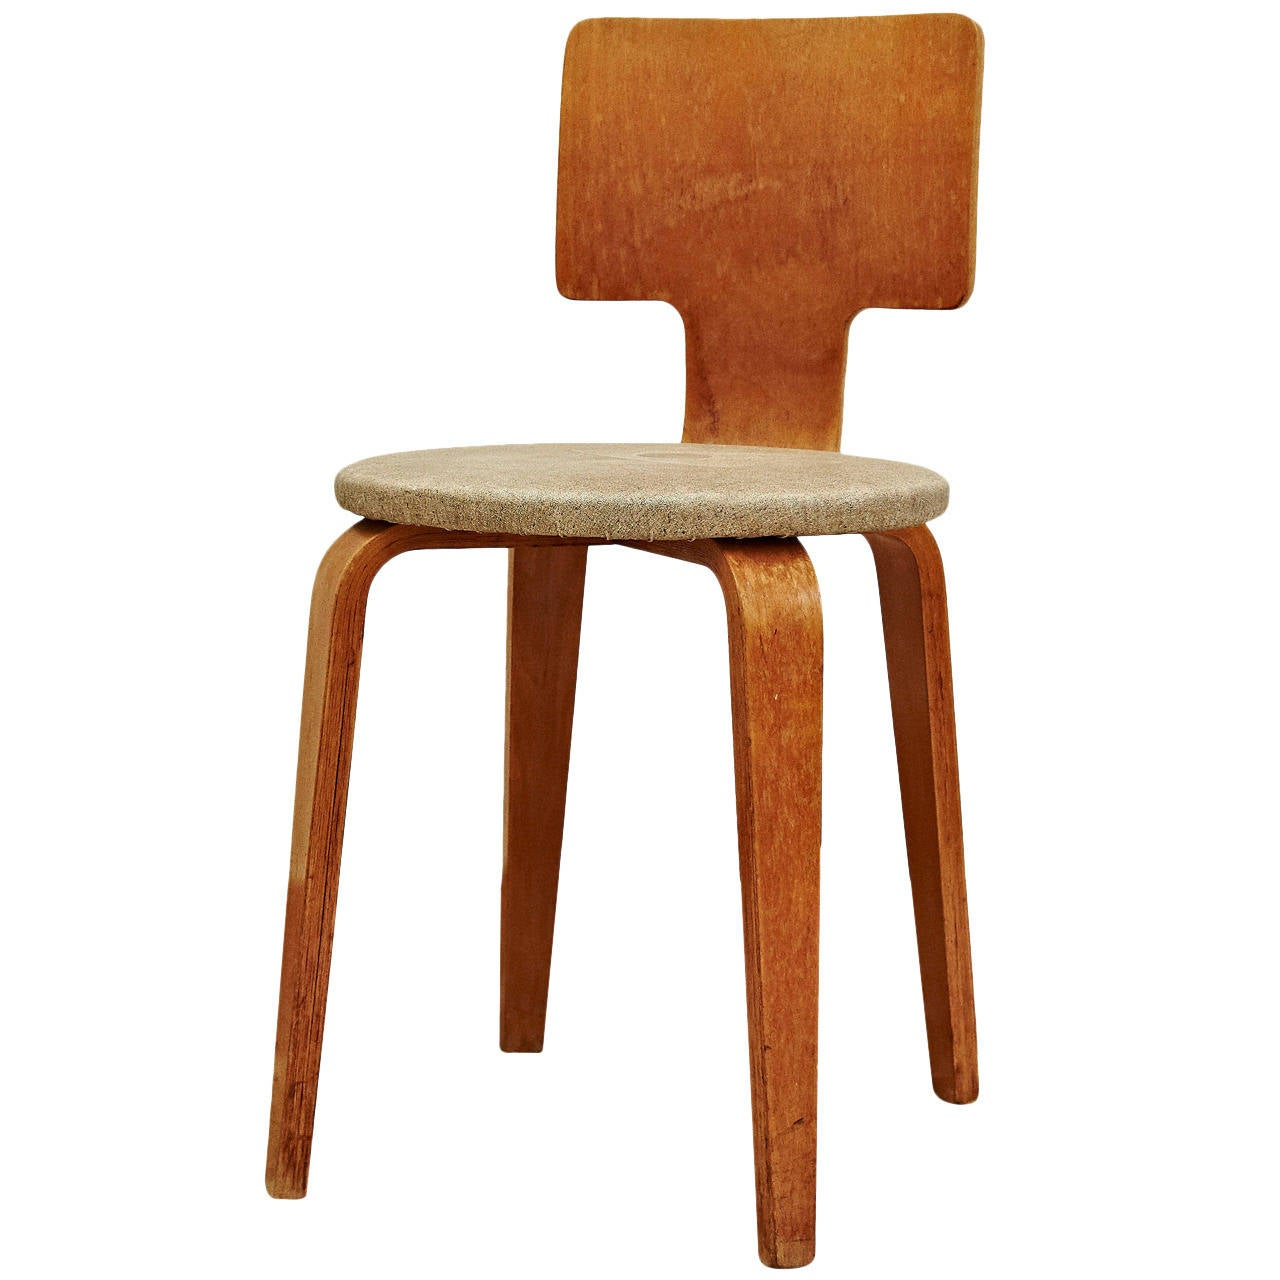 Cor alons chair circa 1950 for sale at 1stdibs for Furniture 1950